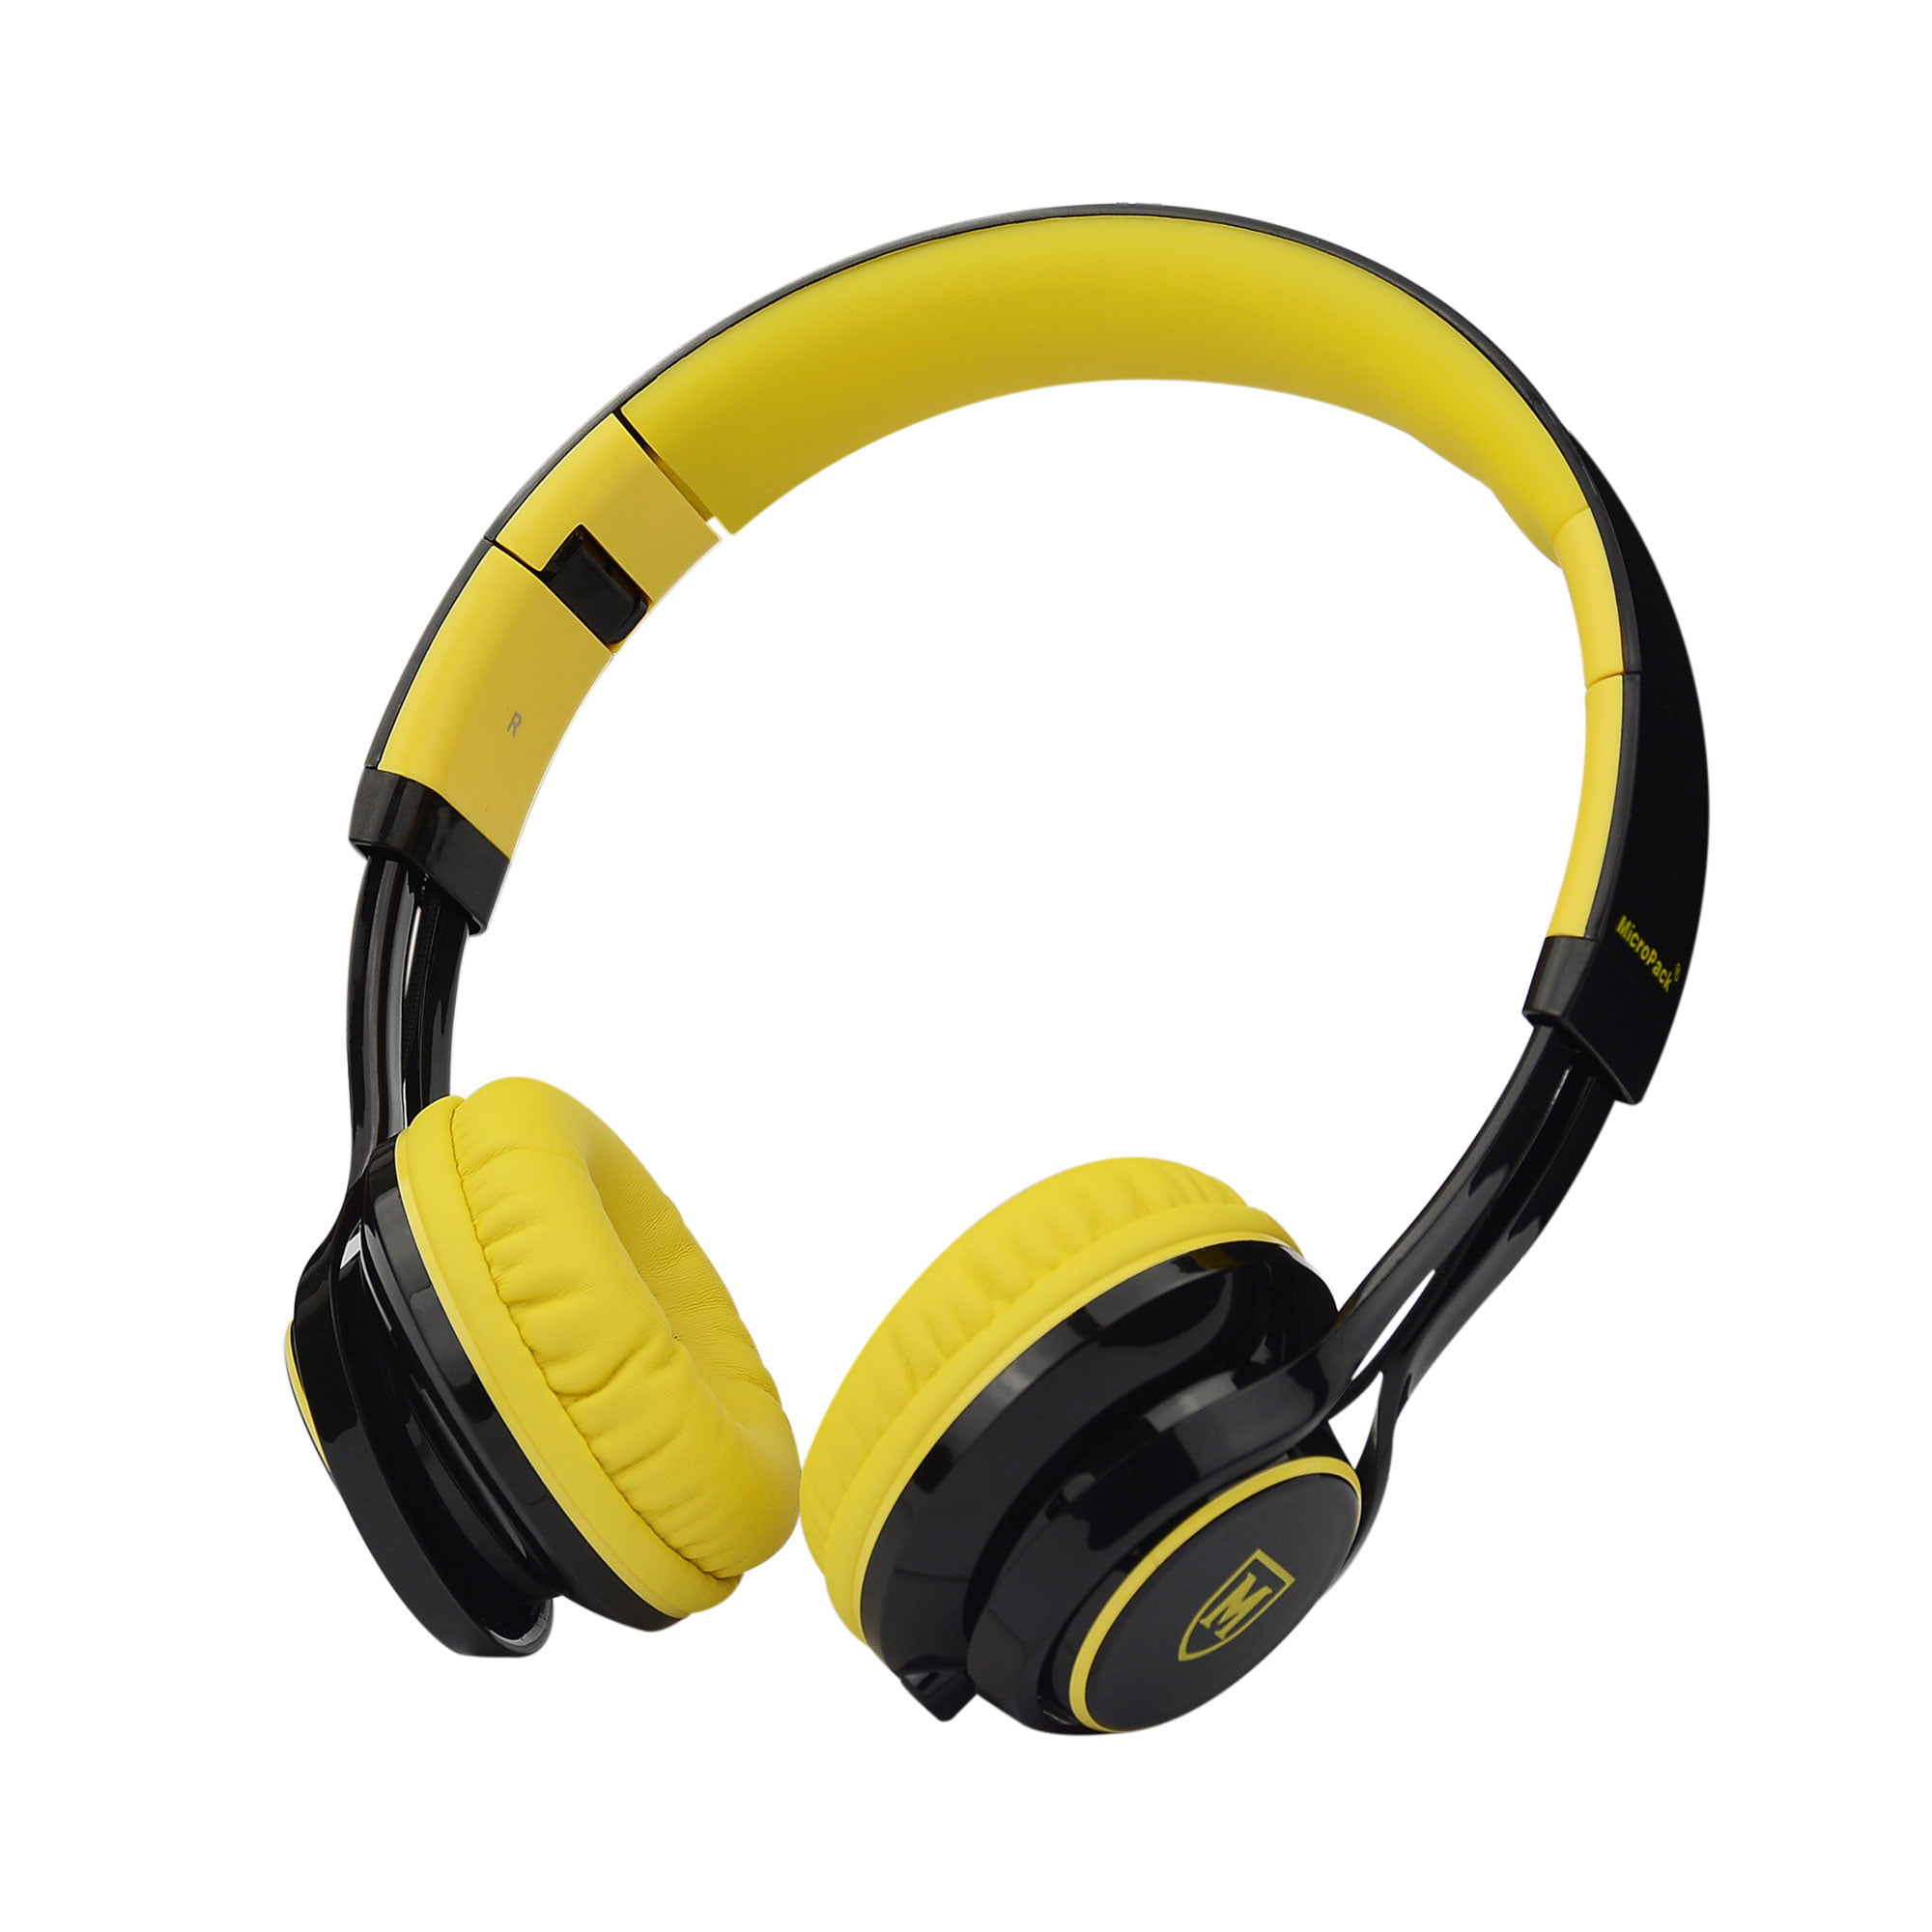 Jual Micropack Headphone W Mic Mhp 500 Yellow Mouse Double Lens Mp Y212r Black Grey